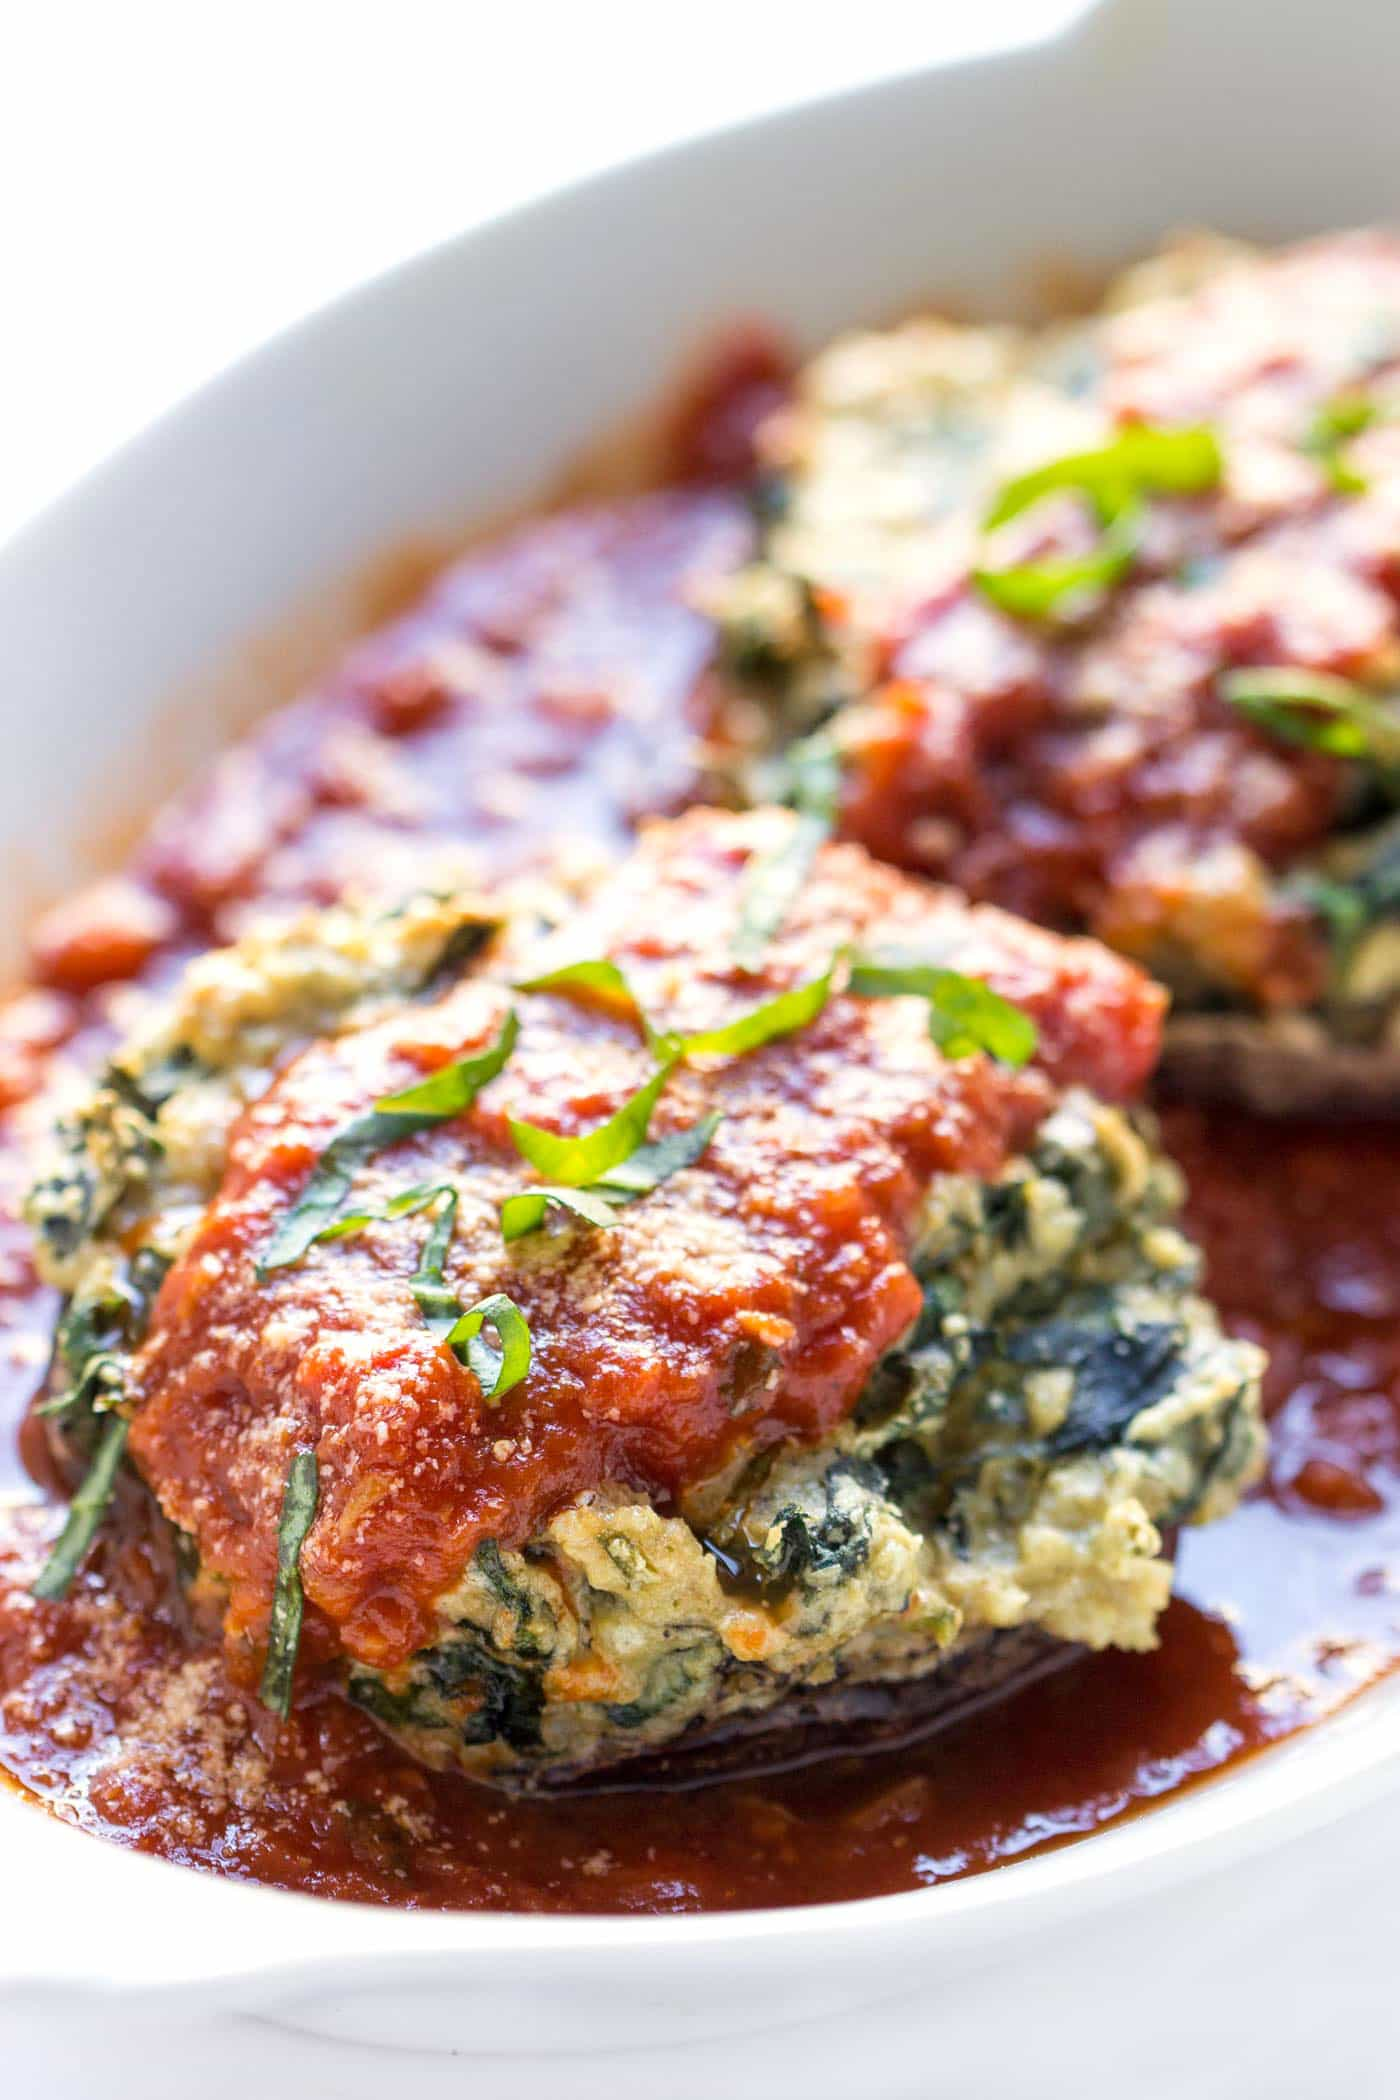 These VEGAN stuffed mushrooms are a healthier version of stuffed shells without the dairy OR gluten!